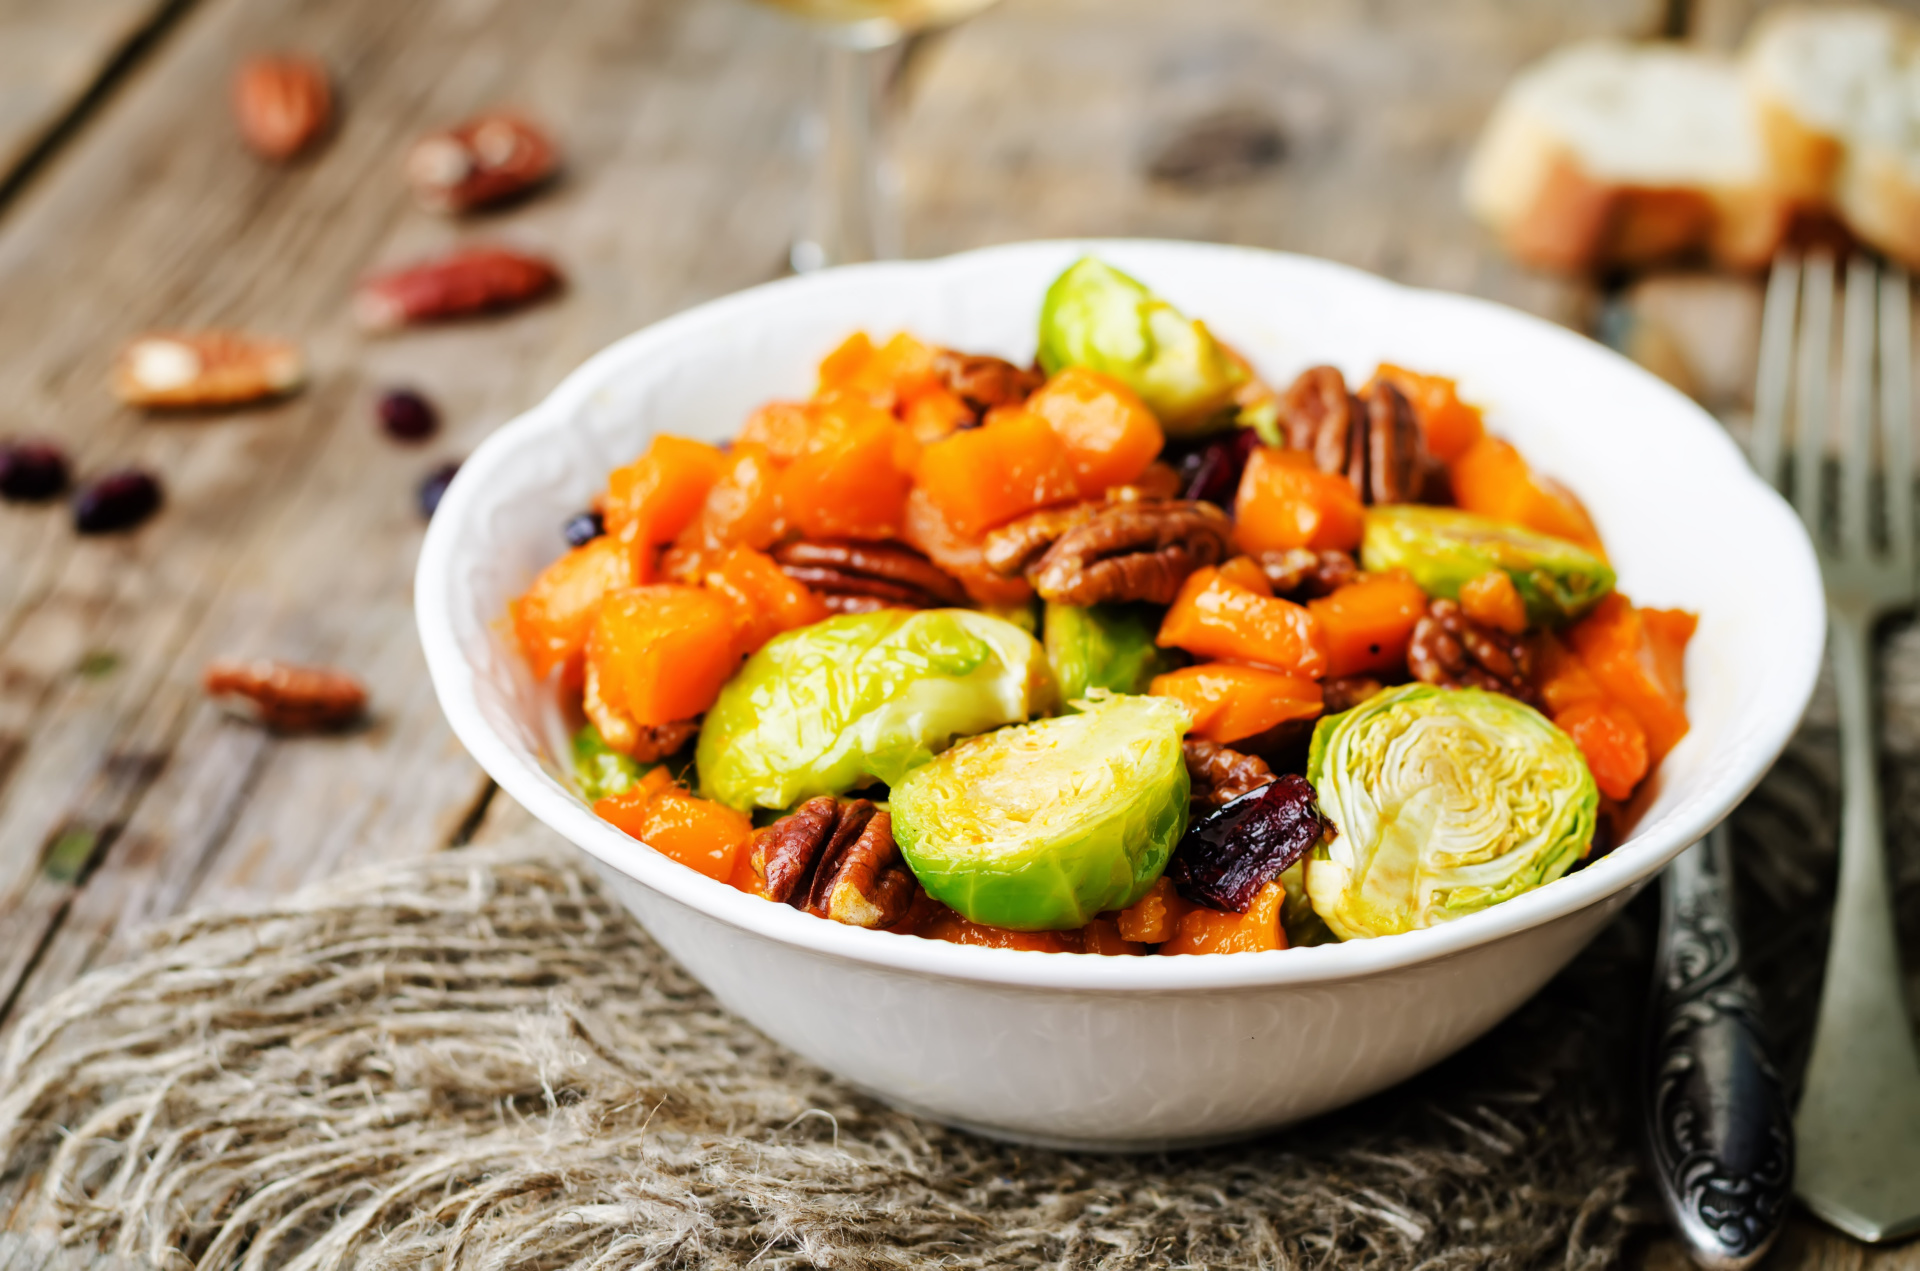 Winter Delight: Roasted Cinnamon Butternut Squash and Brussels sprouts